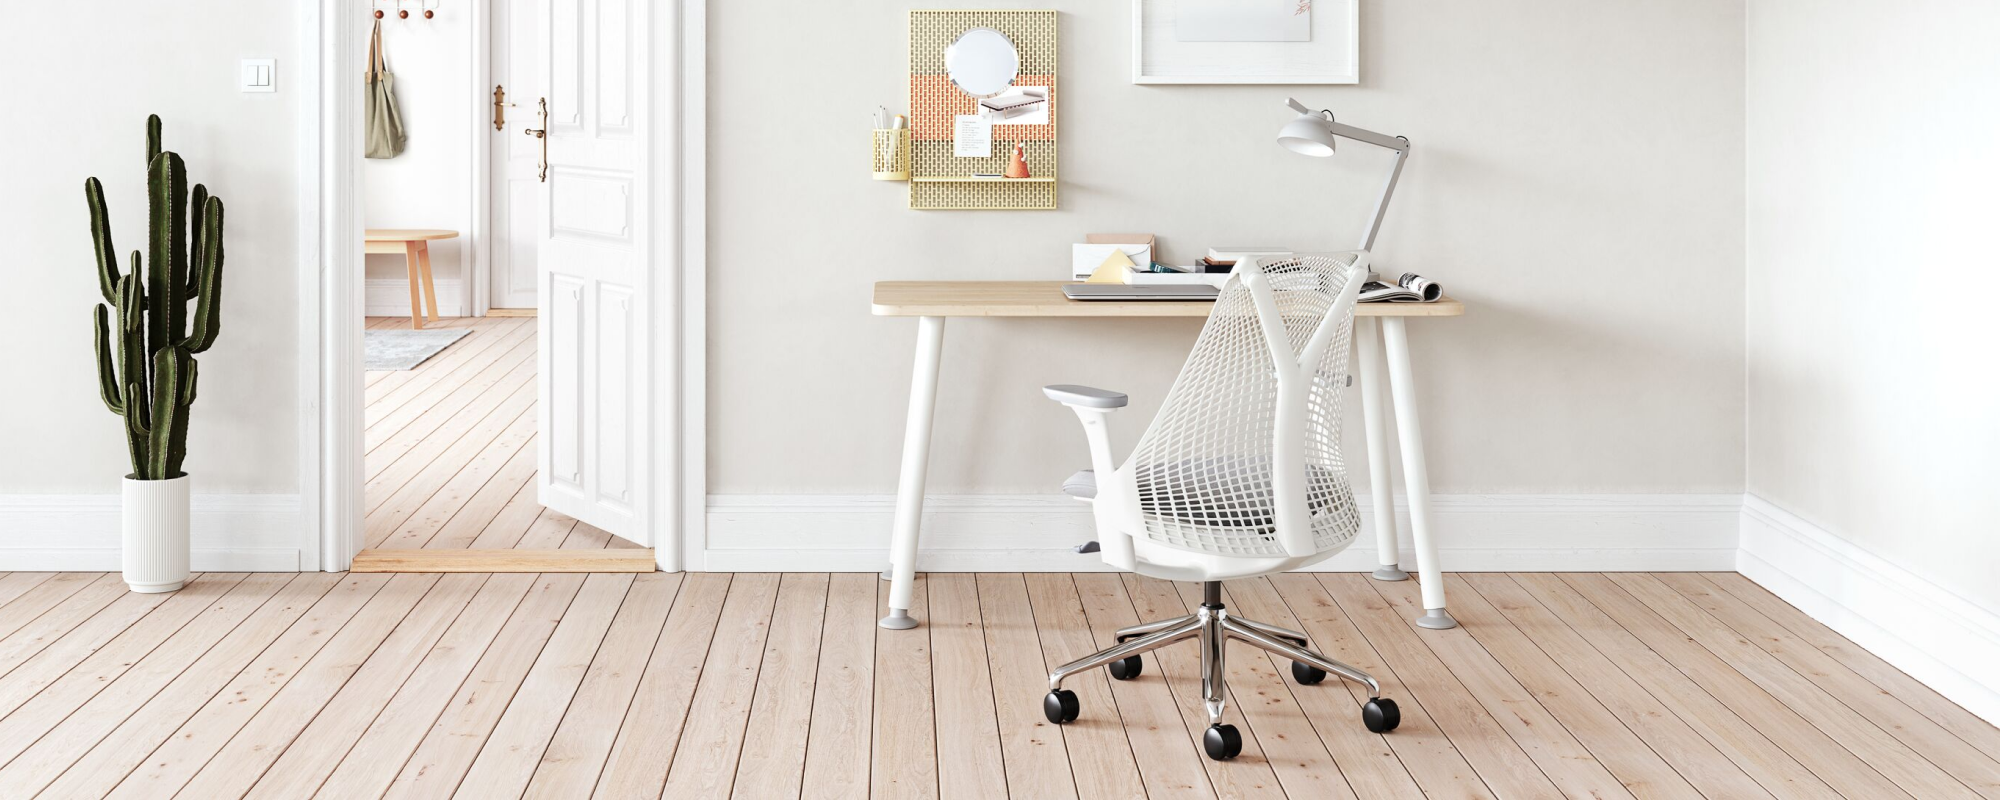 A light home office environment featuring a White Sayl Chair with polished base at a Halifax White Oak Memo Desk with a Formwork Paper Tray ontop